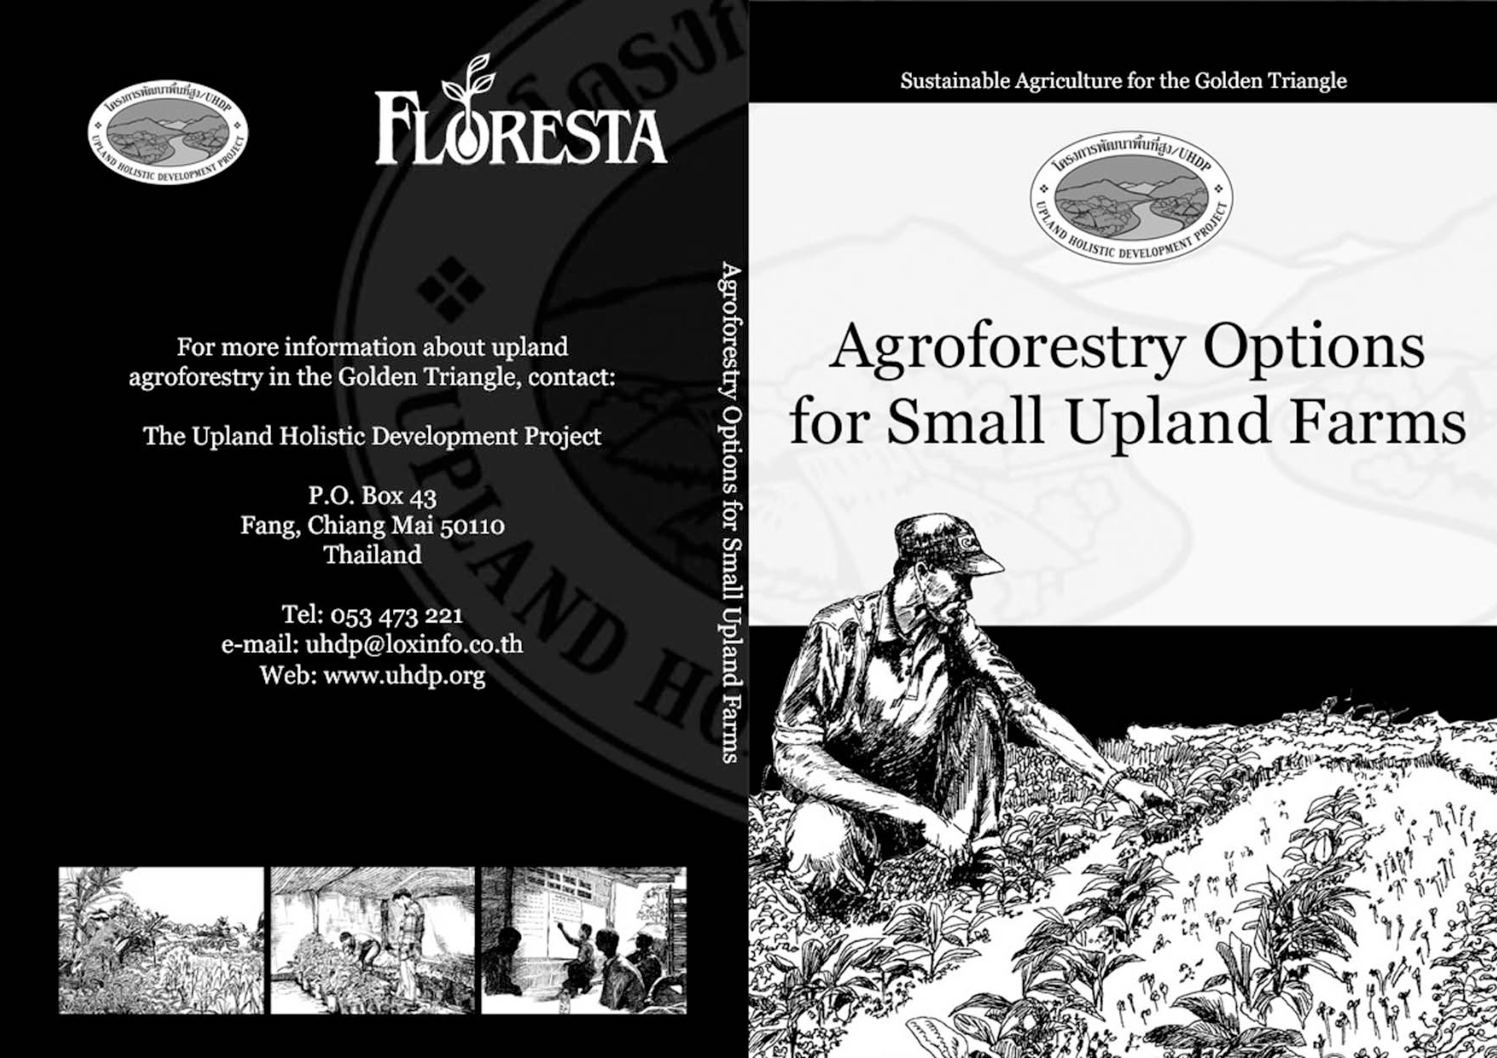 Calaméo - Agroforestry Optons for Small Upland Farms